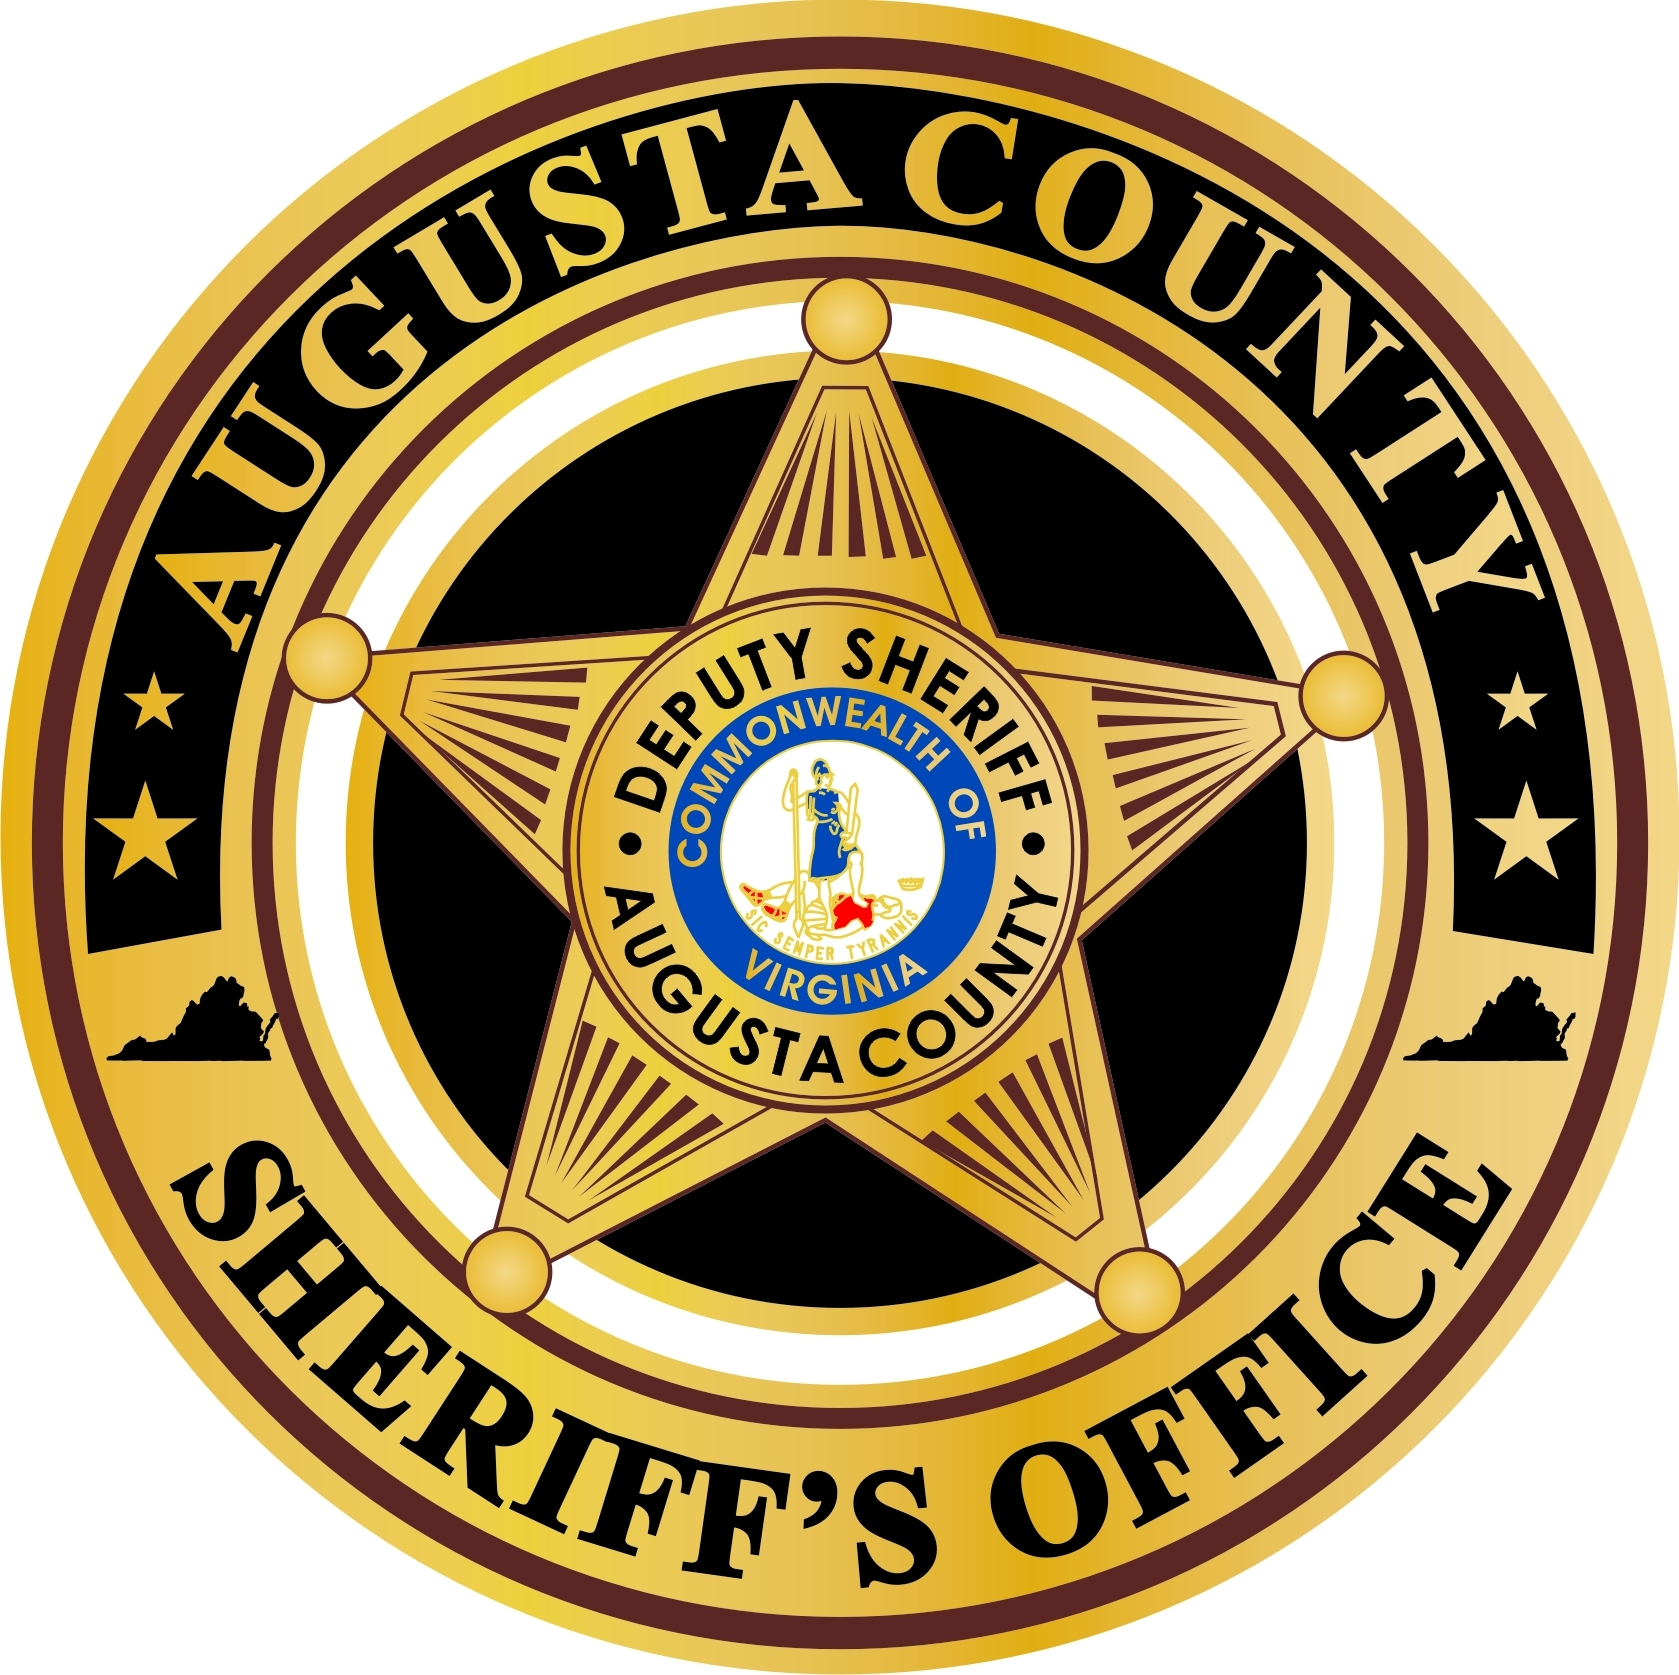 Reminder about Changes to Augusta County Noise Ordinance